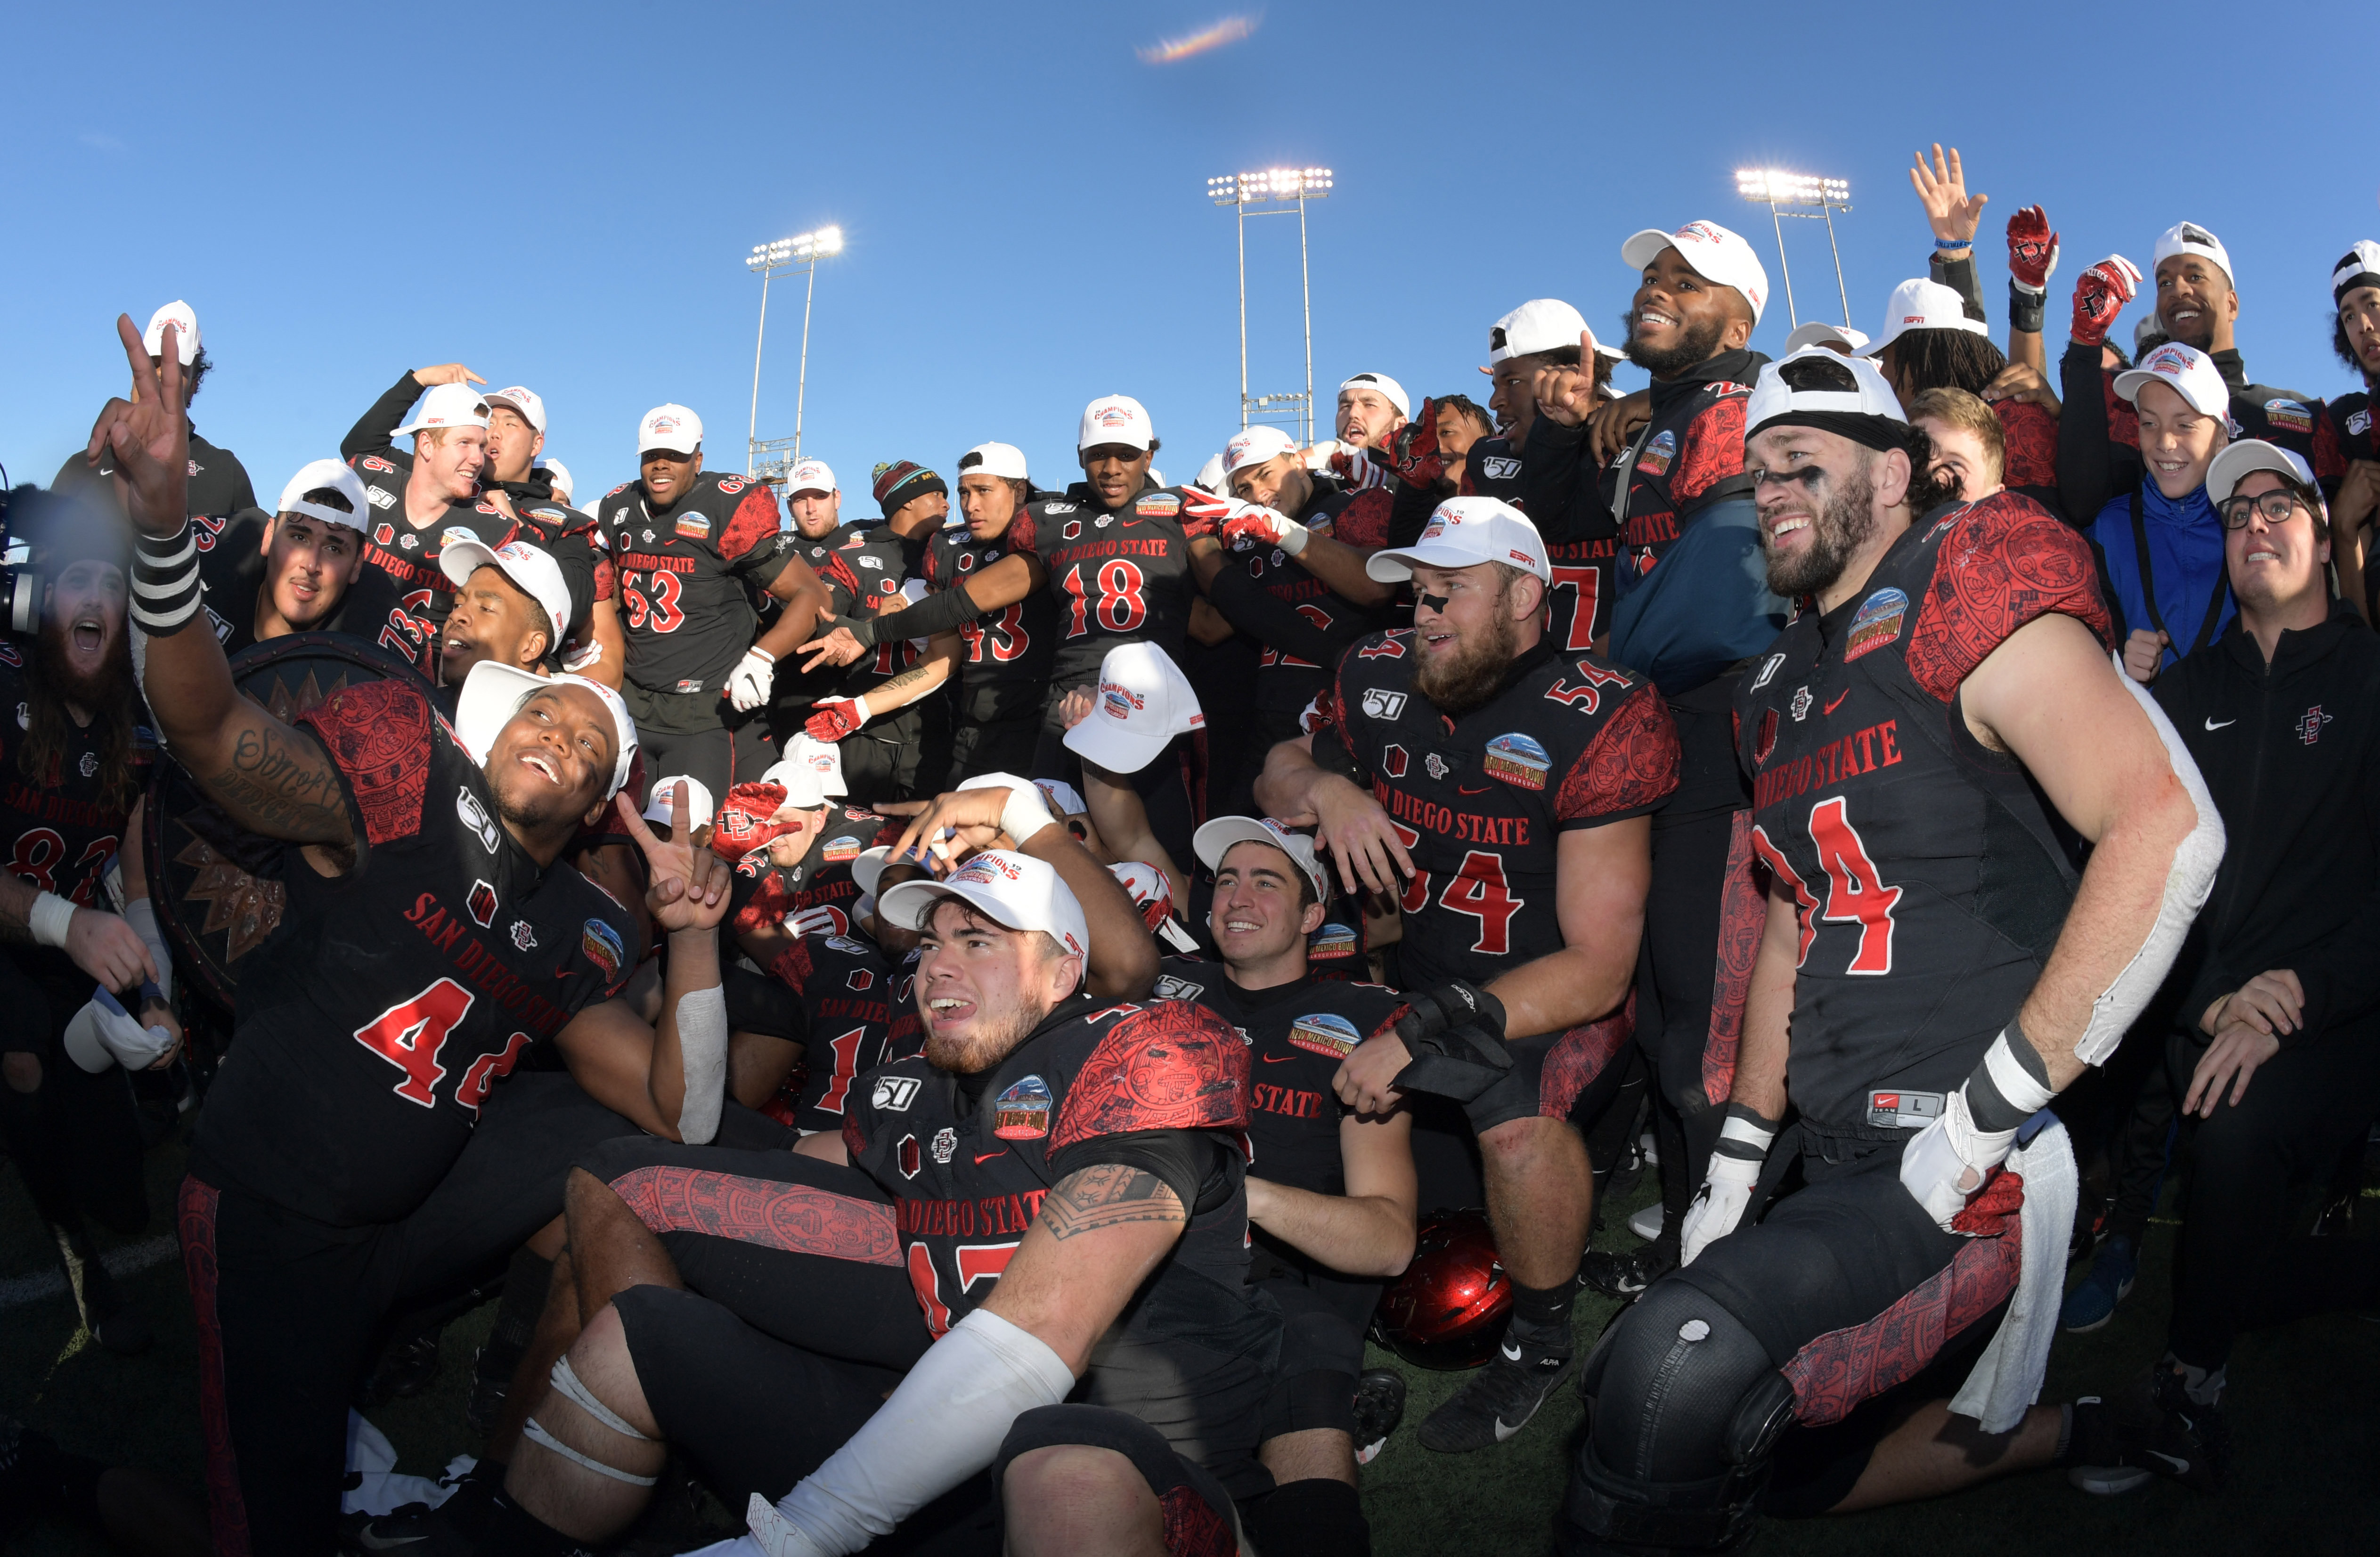 San Diego State players celebrate after the New Mexico Bowl against Central Michigan at Dreamstyle Stadium. San Diego State defeated Central Michigan 48-11.